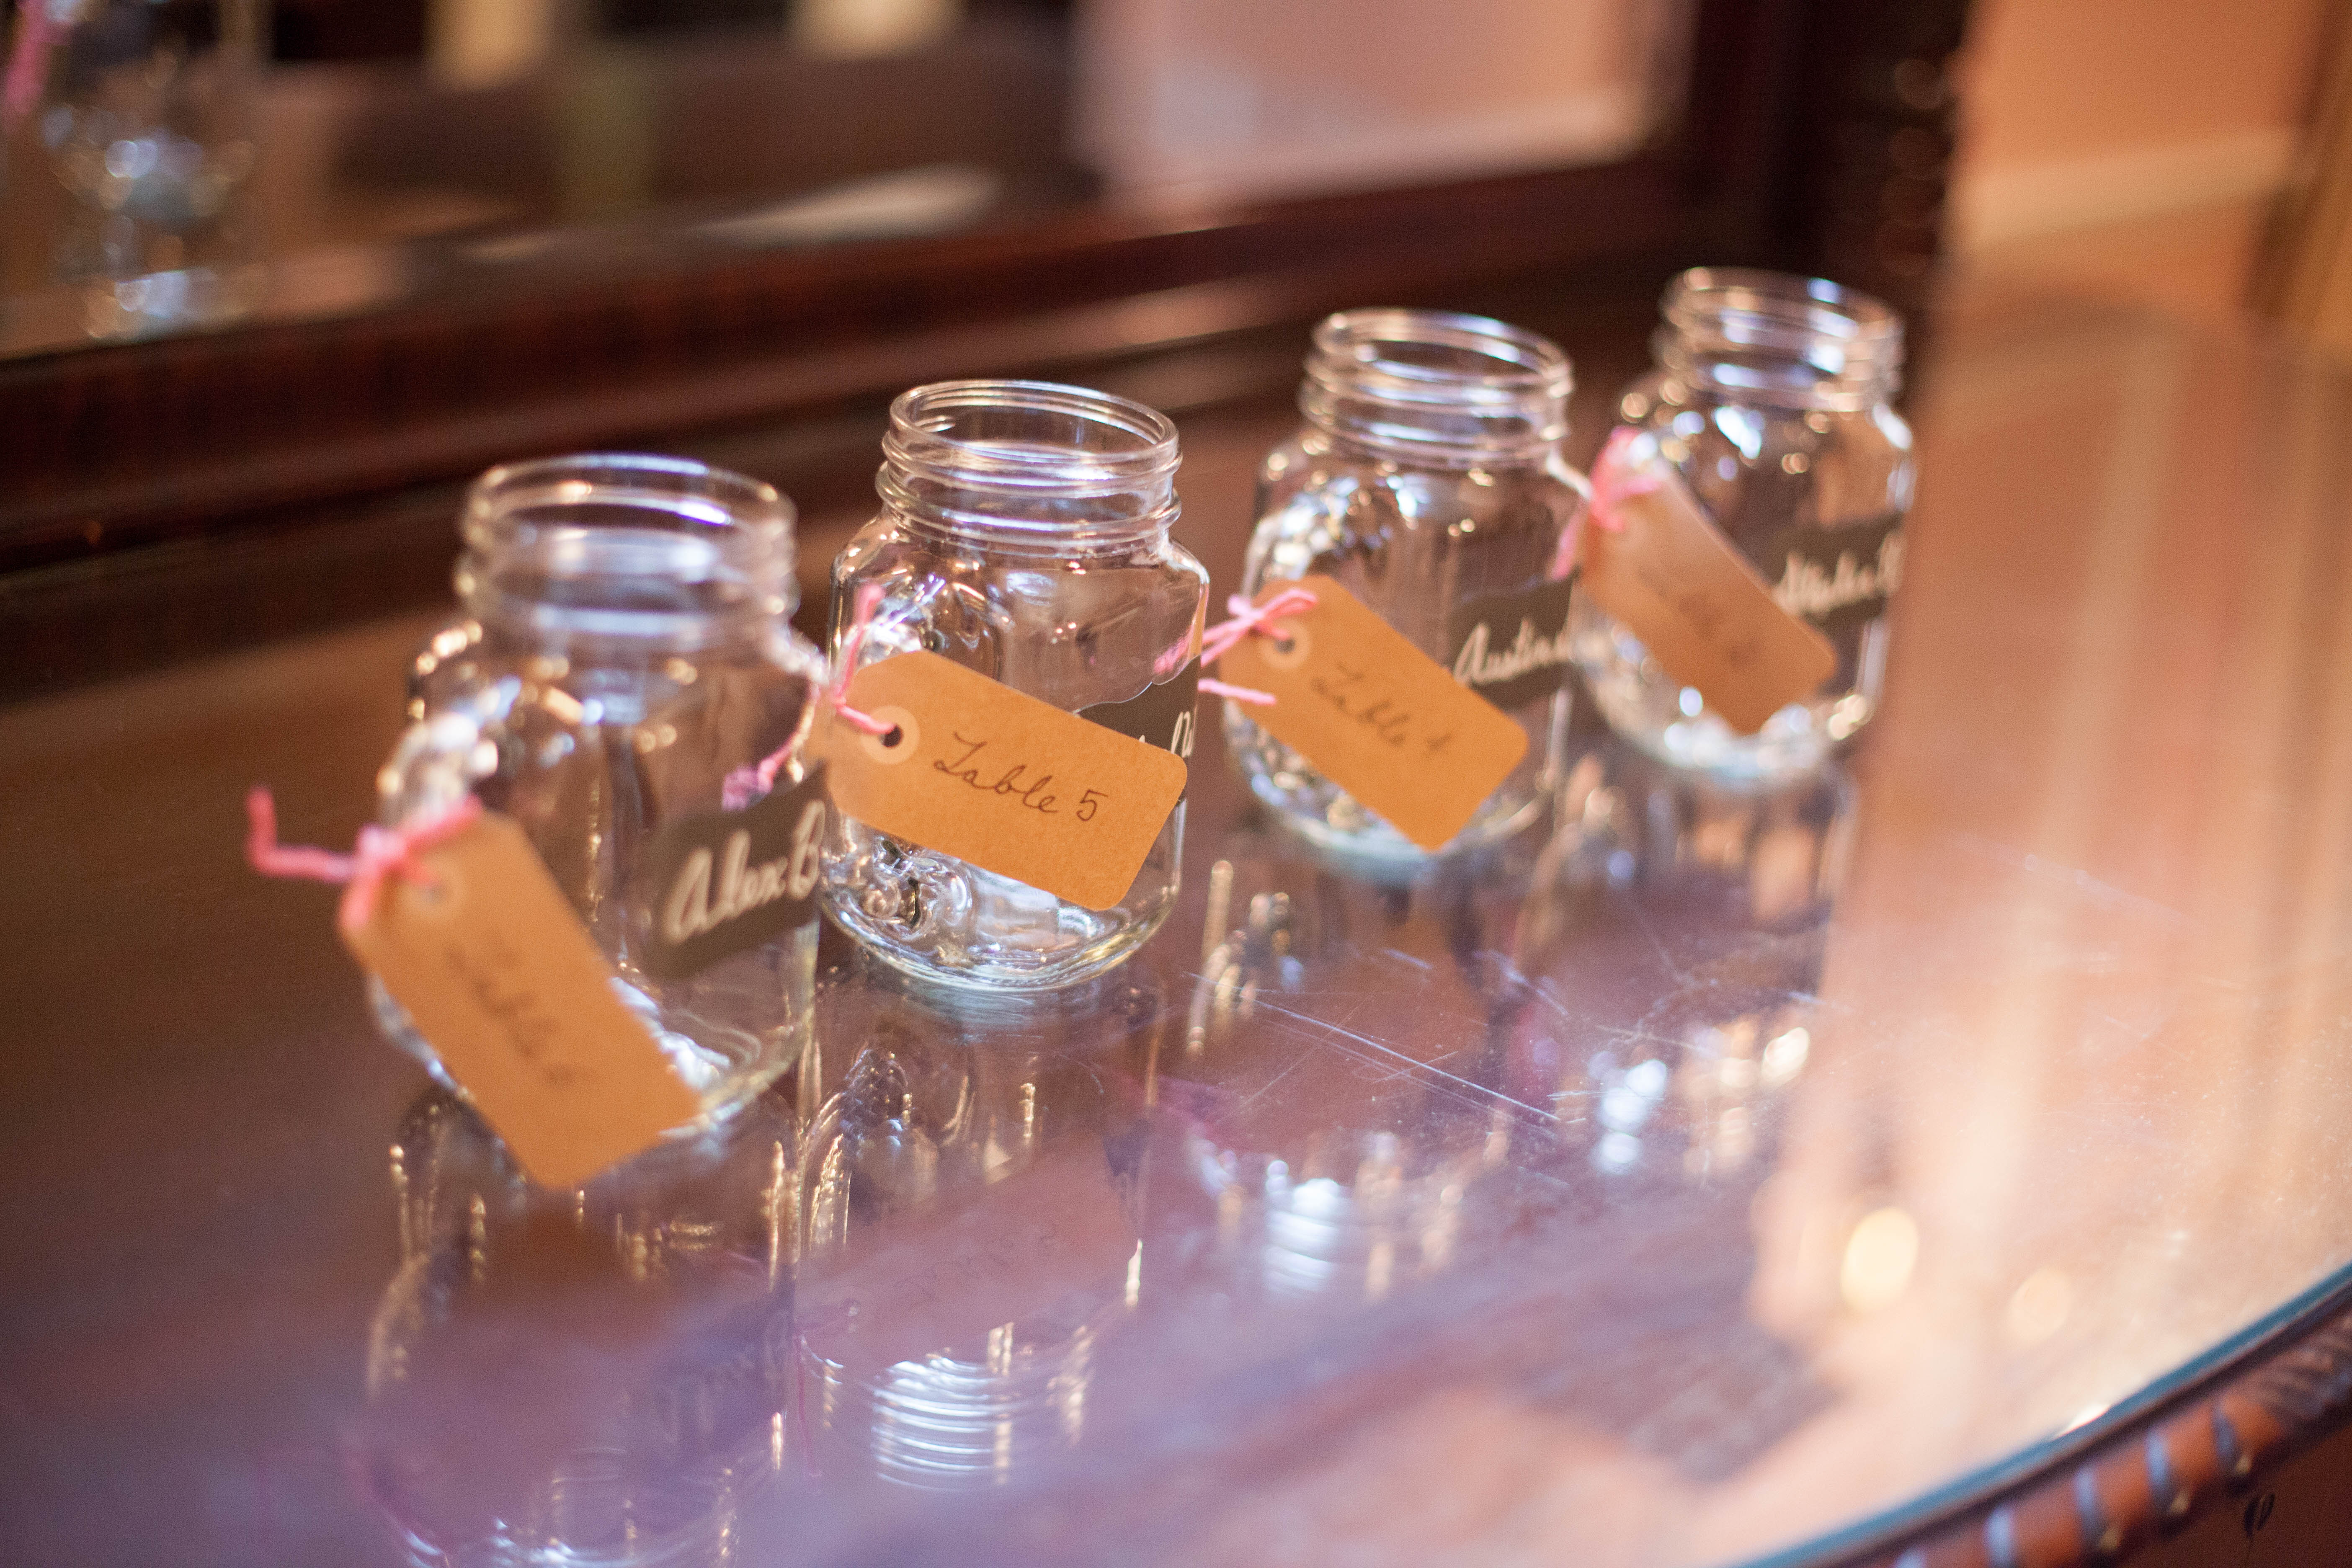 DIY Wedding project, escort cards with tables number tied to clear mason jars with handles with chalkboard label of guests name used as escort cards